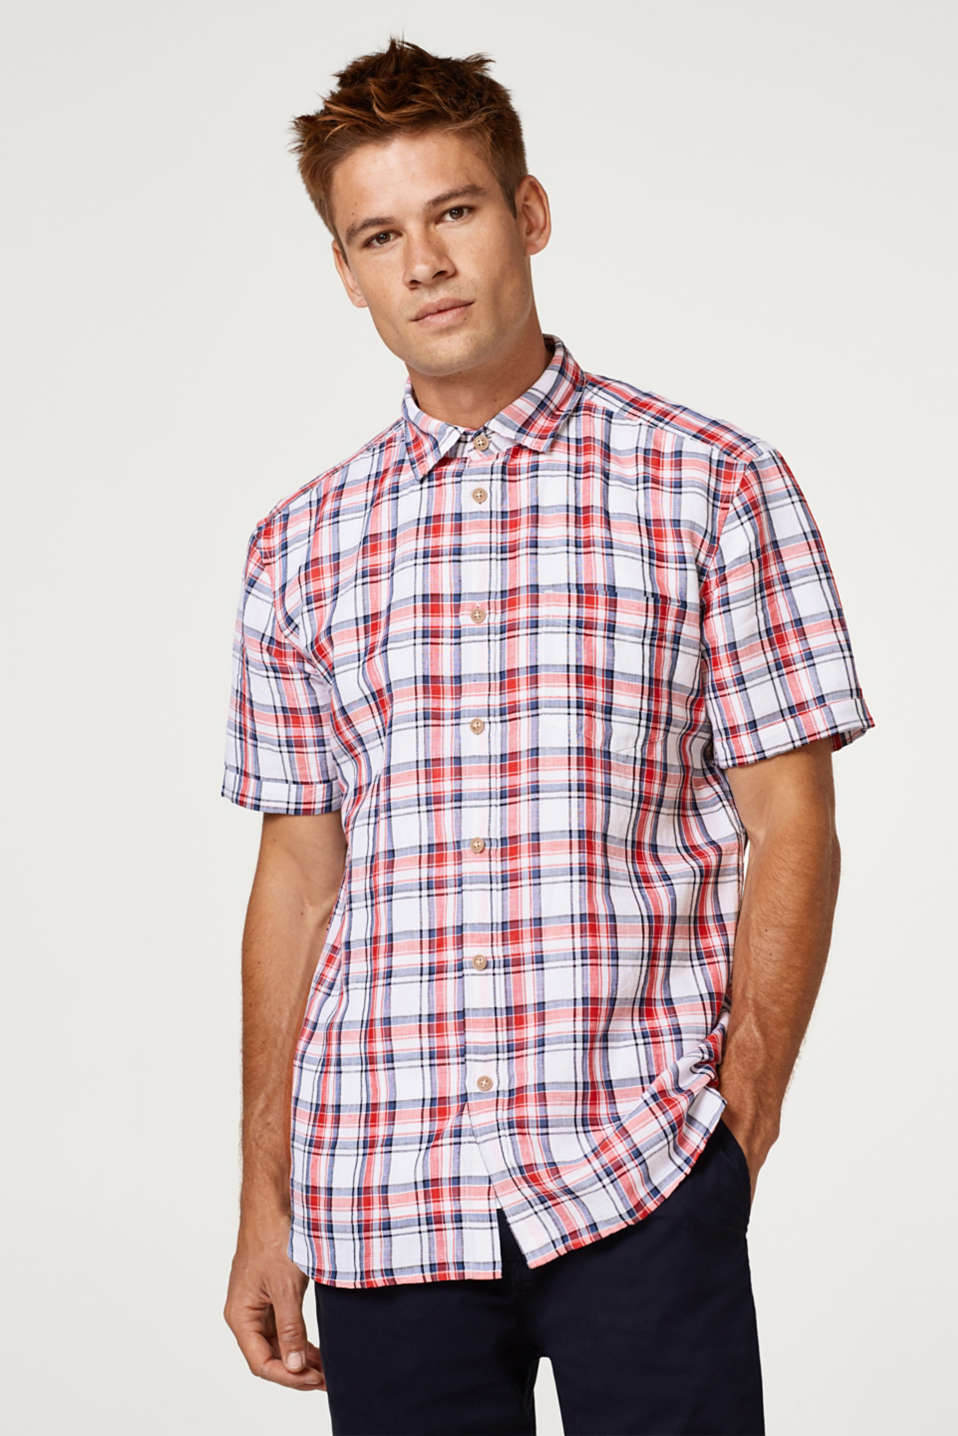 Esprit - Made of blended linen: short sleeve shirt with a check pattern